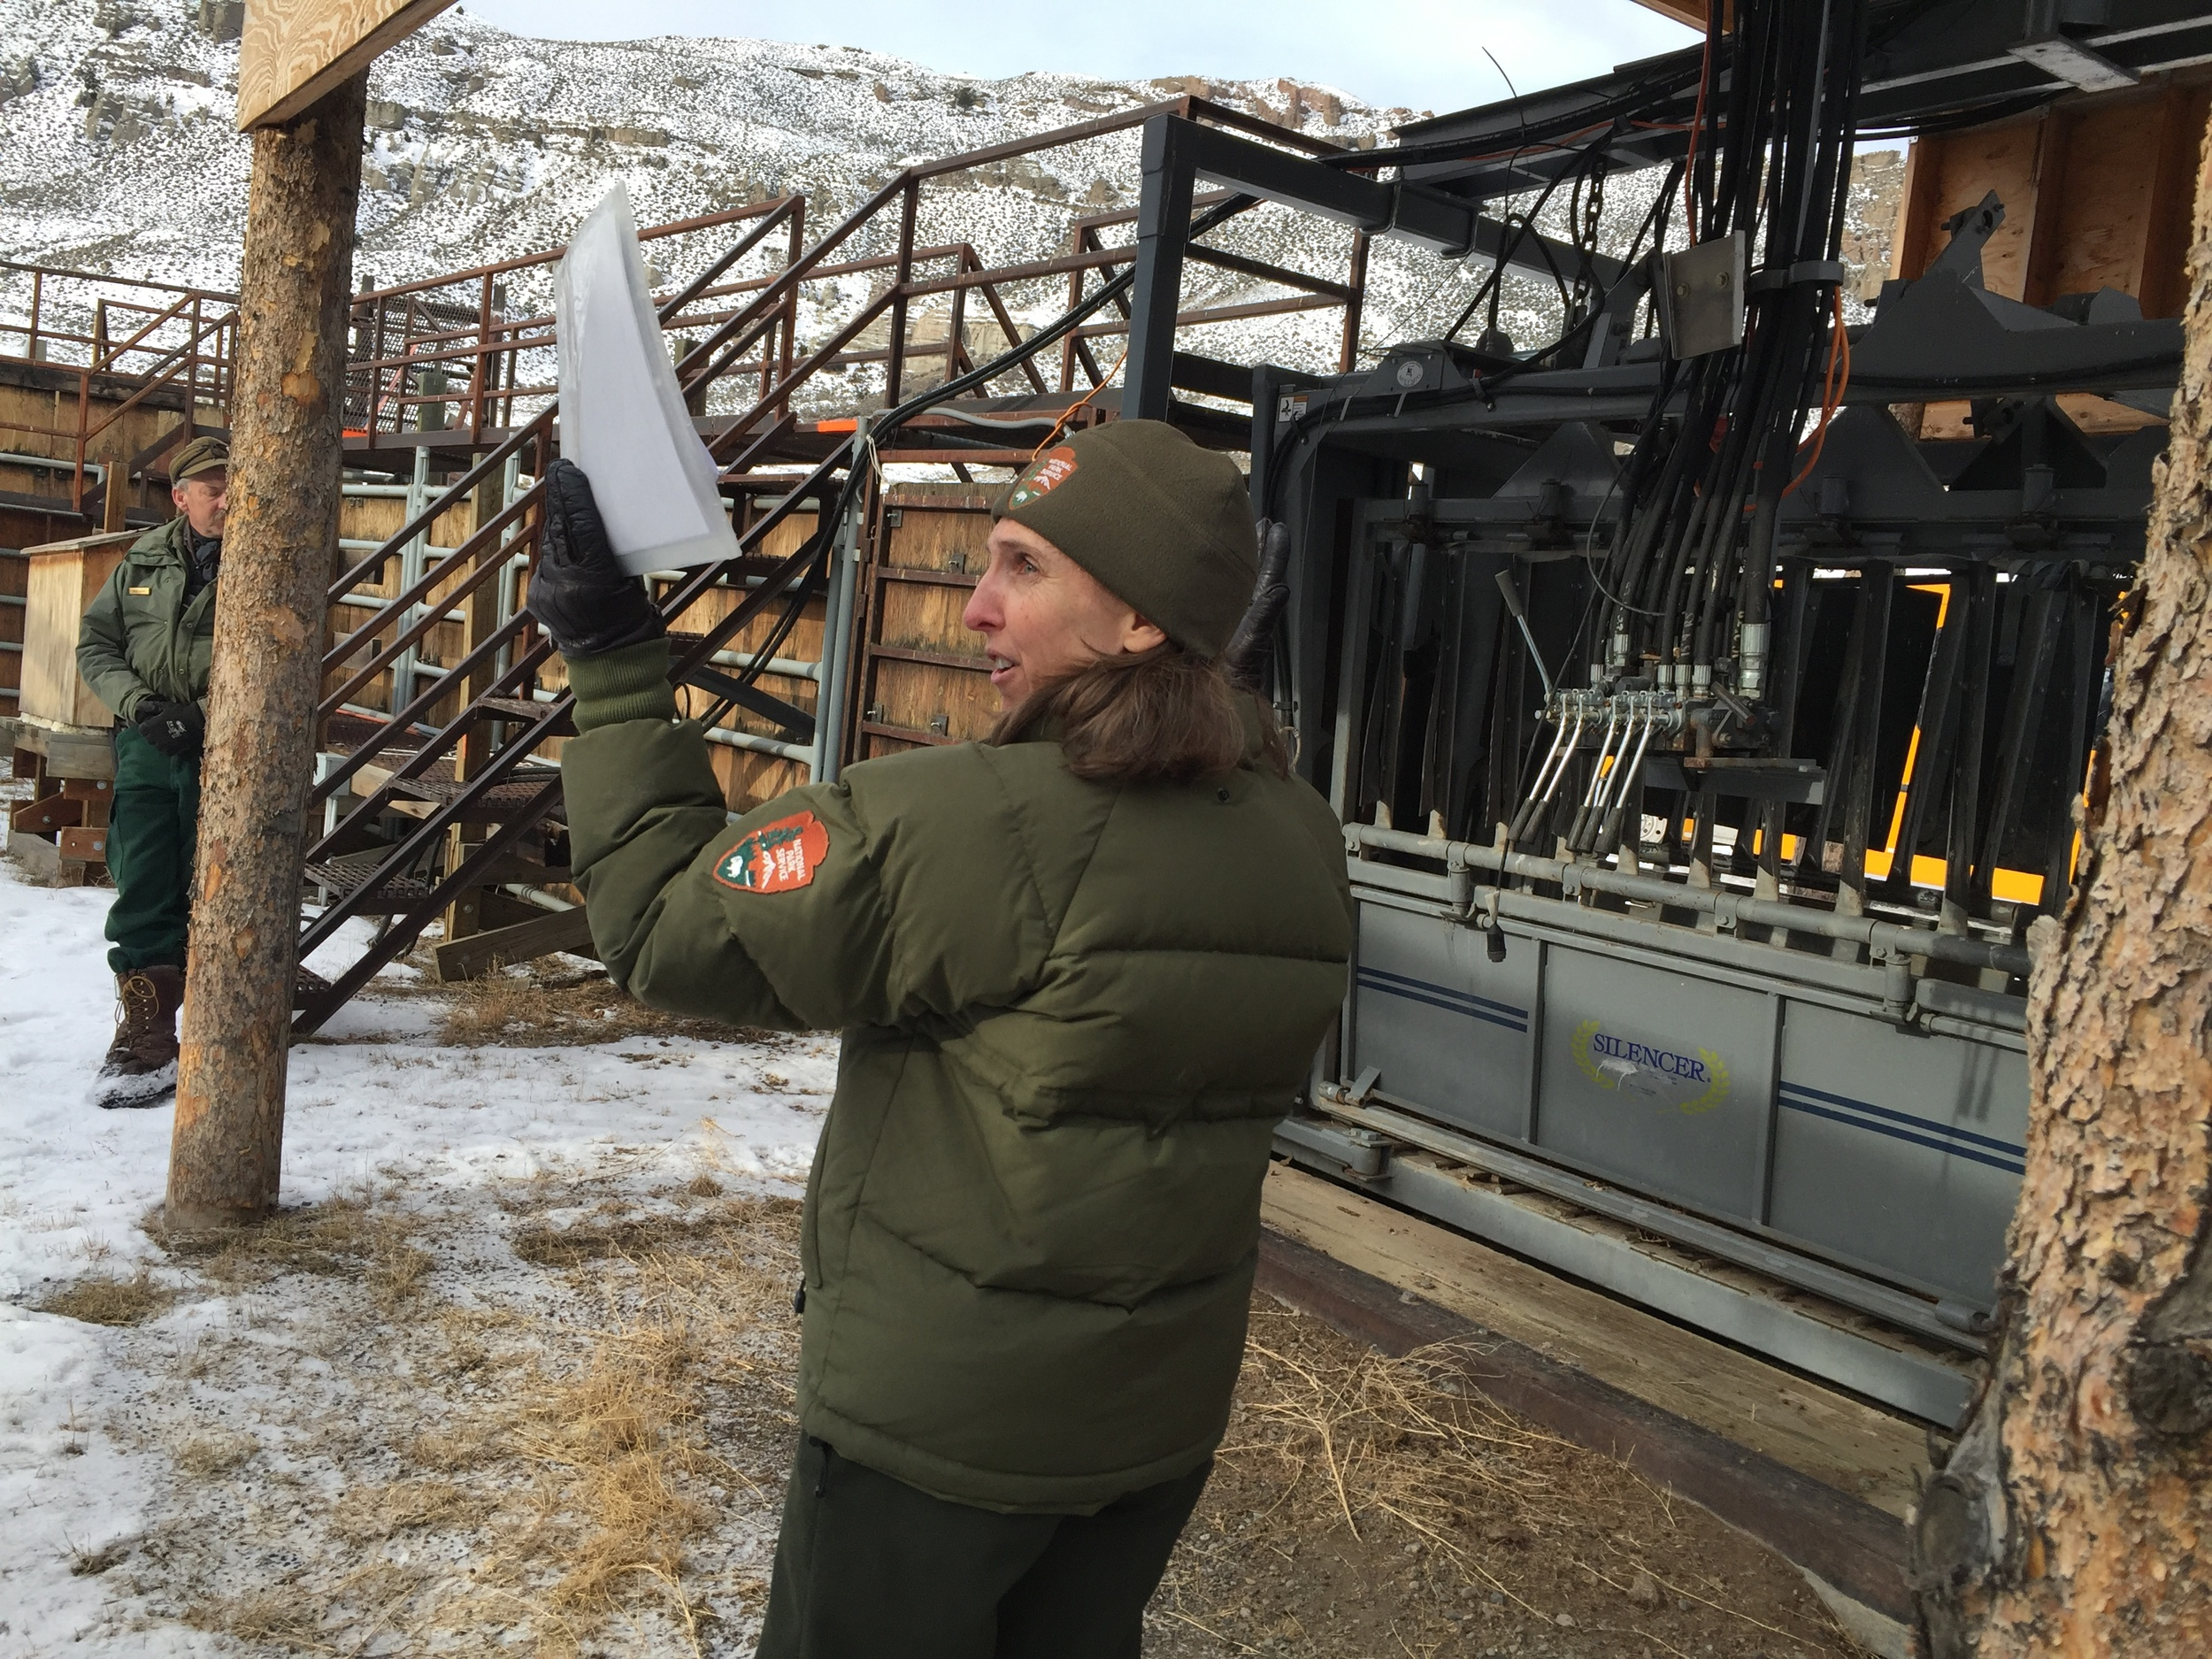 Jody Lyle of Yellowstone National Park led a tour of the Stephens Creek facility on January 20. Behind her is the squeeze chute where bison are tagged and tested before being sent to slaughter.